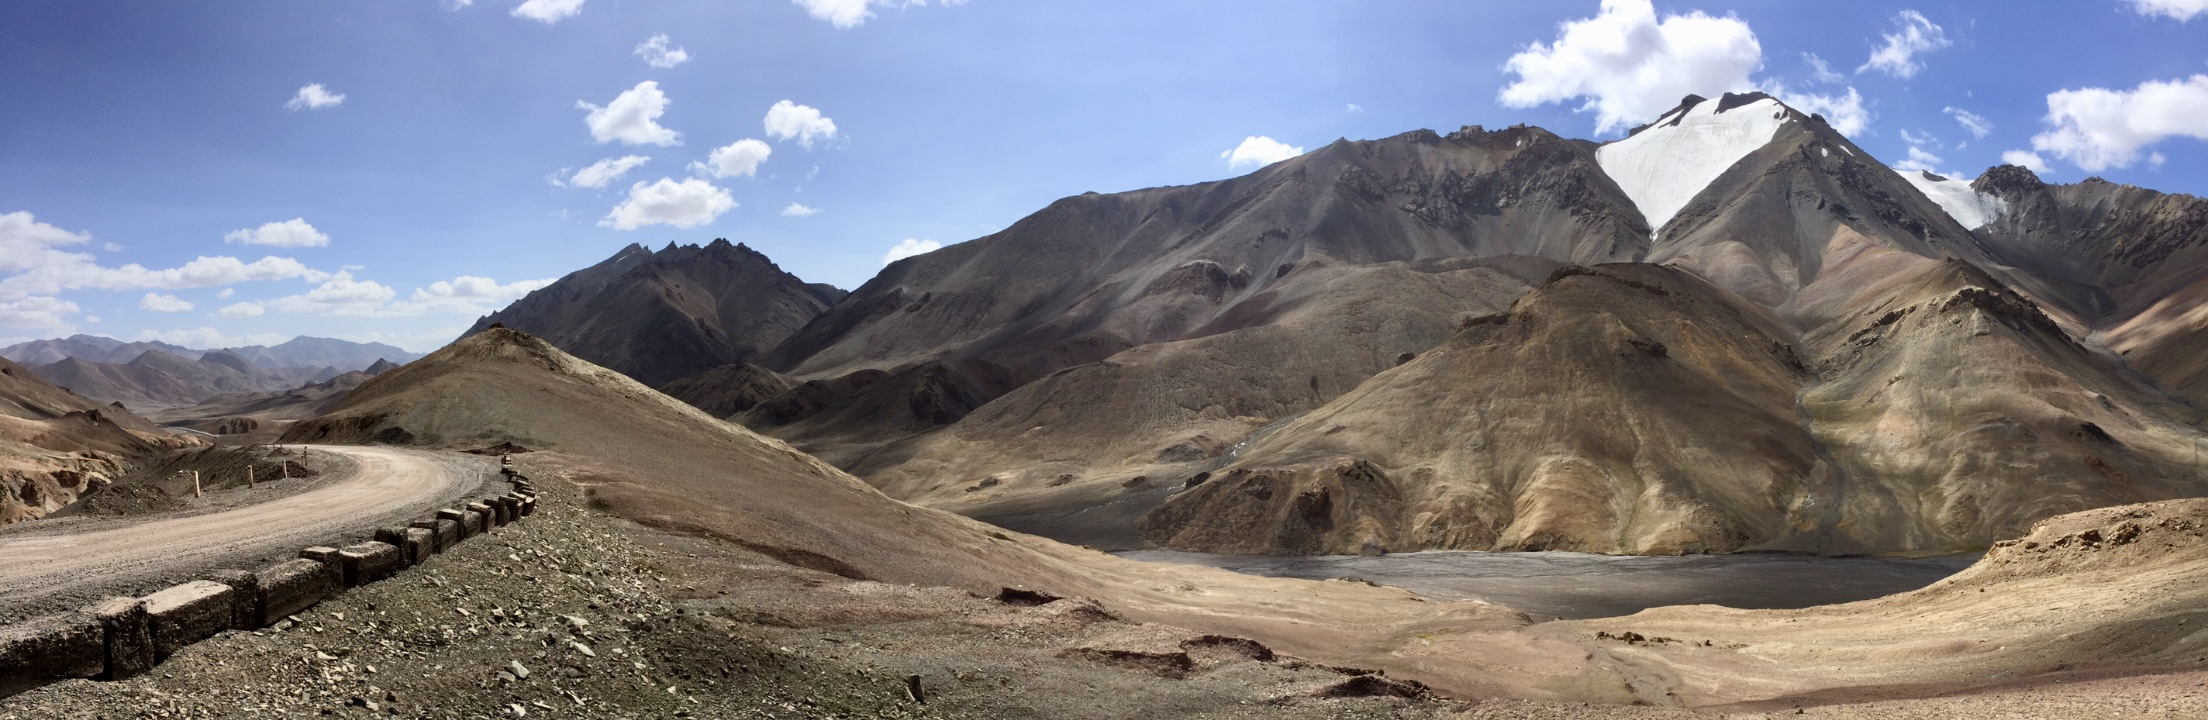 Roof of Central Asia Pamir Highway